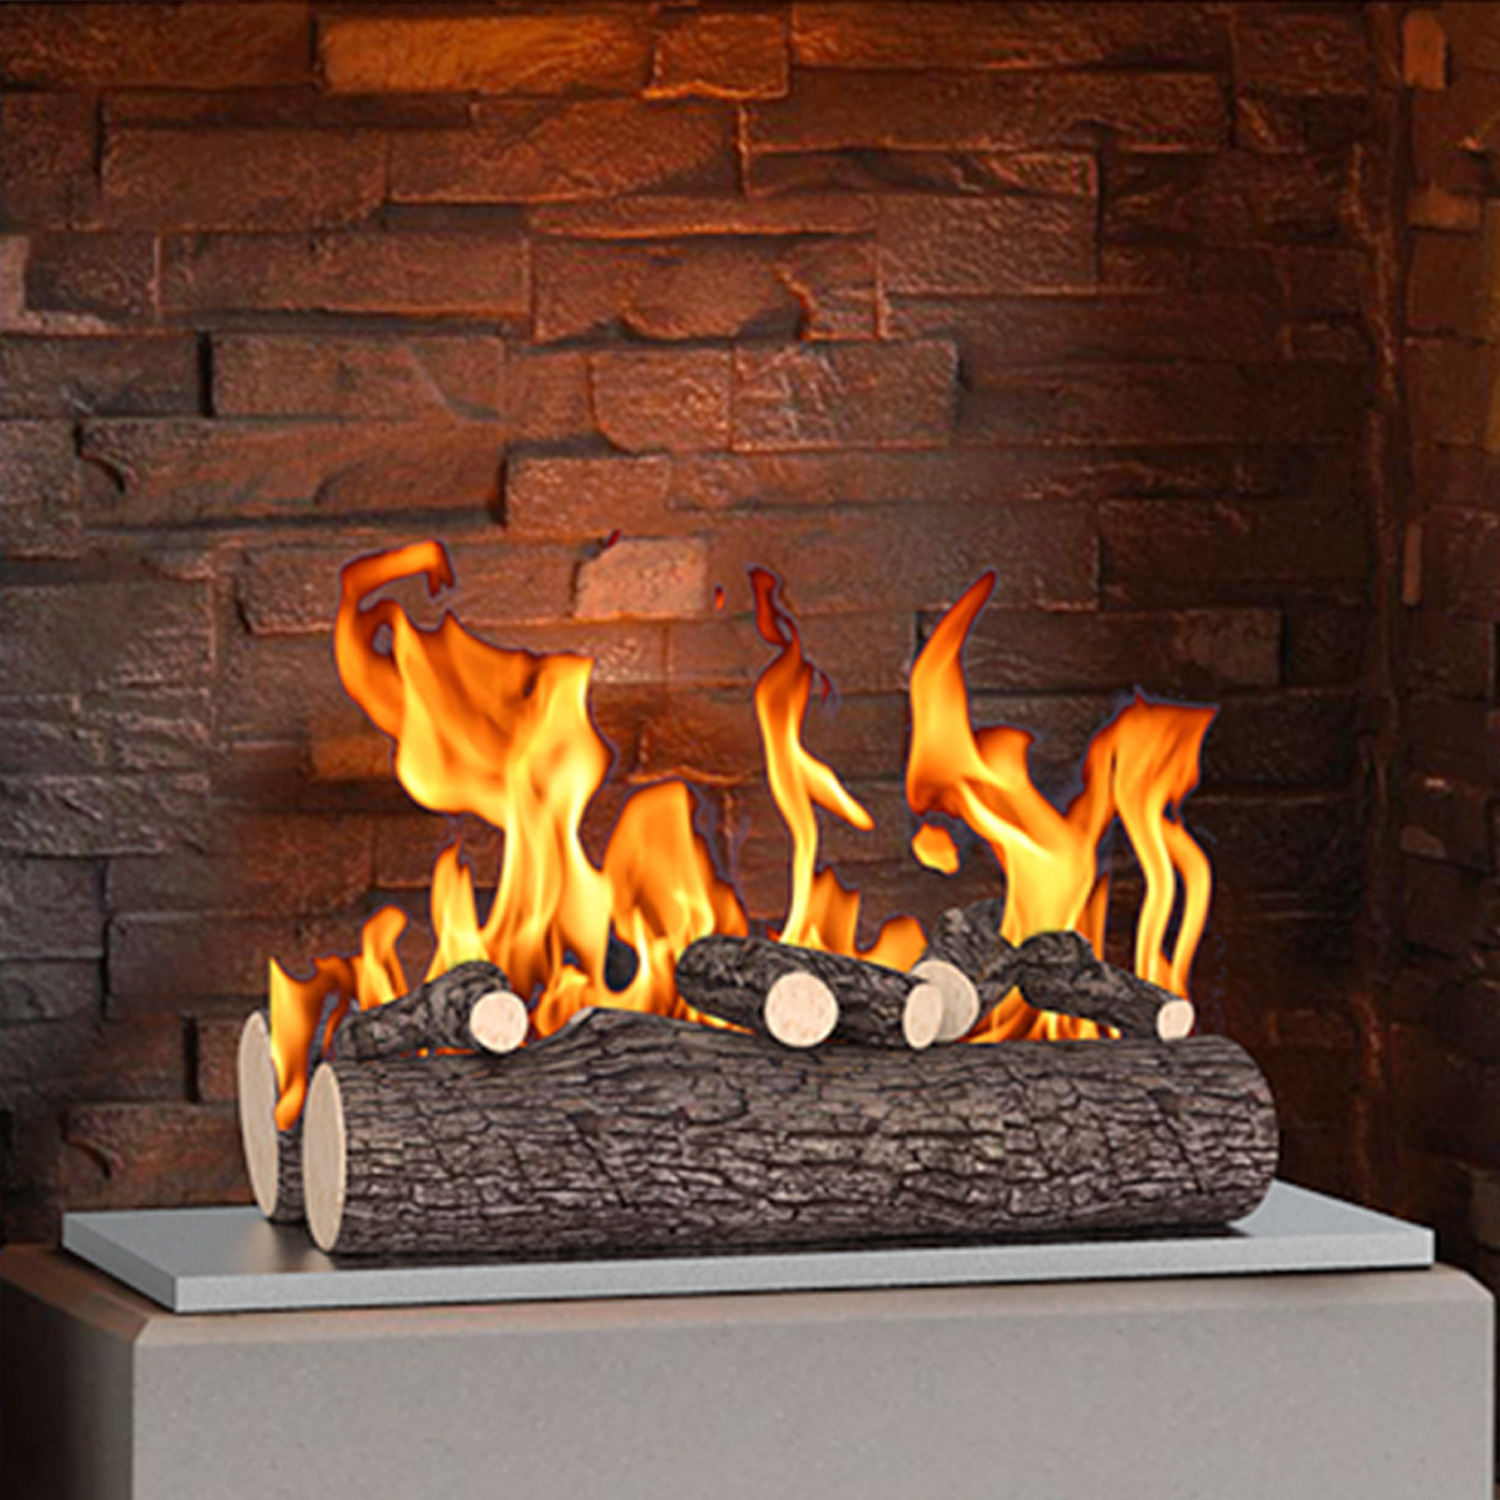 Regal Flame 20 Piece 20 inch Ceramic Wood Gas Fireplace Logs Logs for All  Types of Indoor, Gas Inserts, Ventless & Vent Free, Propane, Gel, Ethanol,  ...